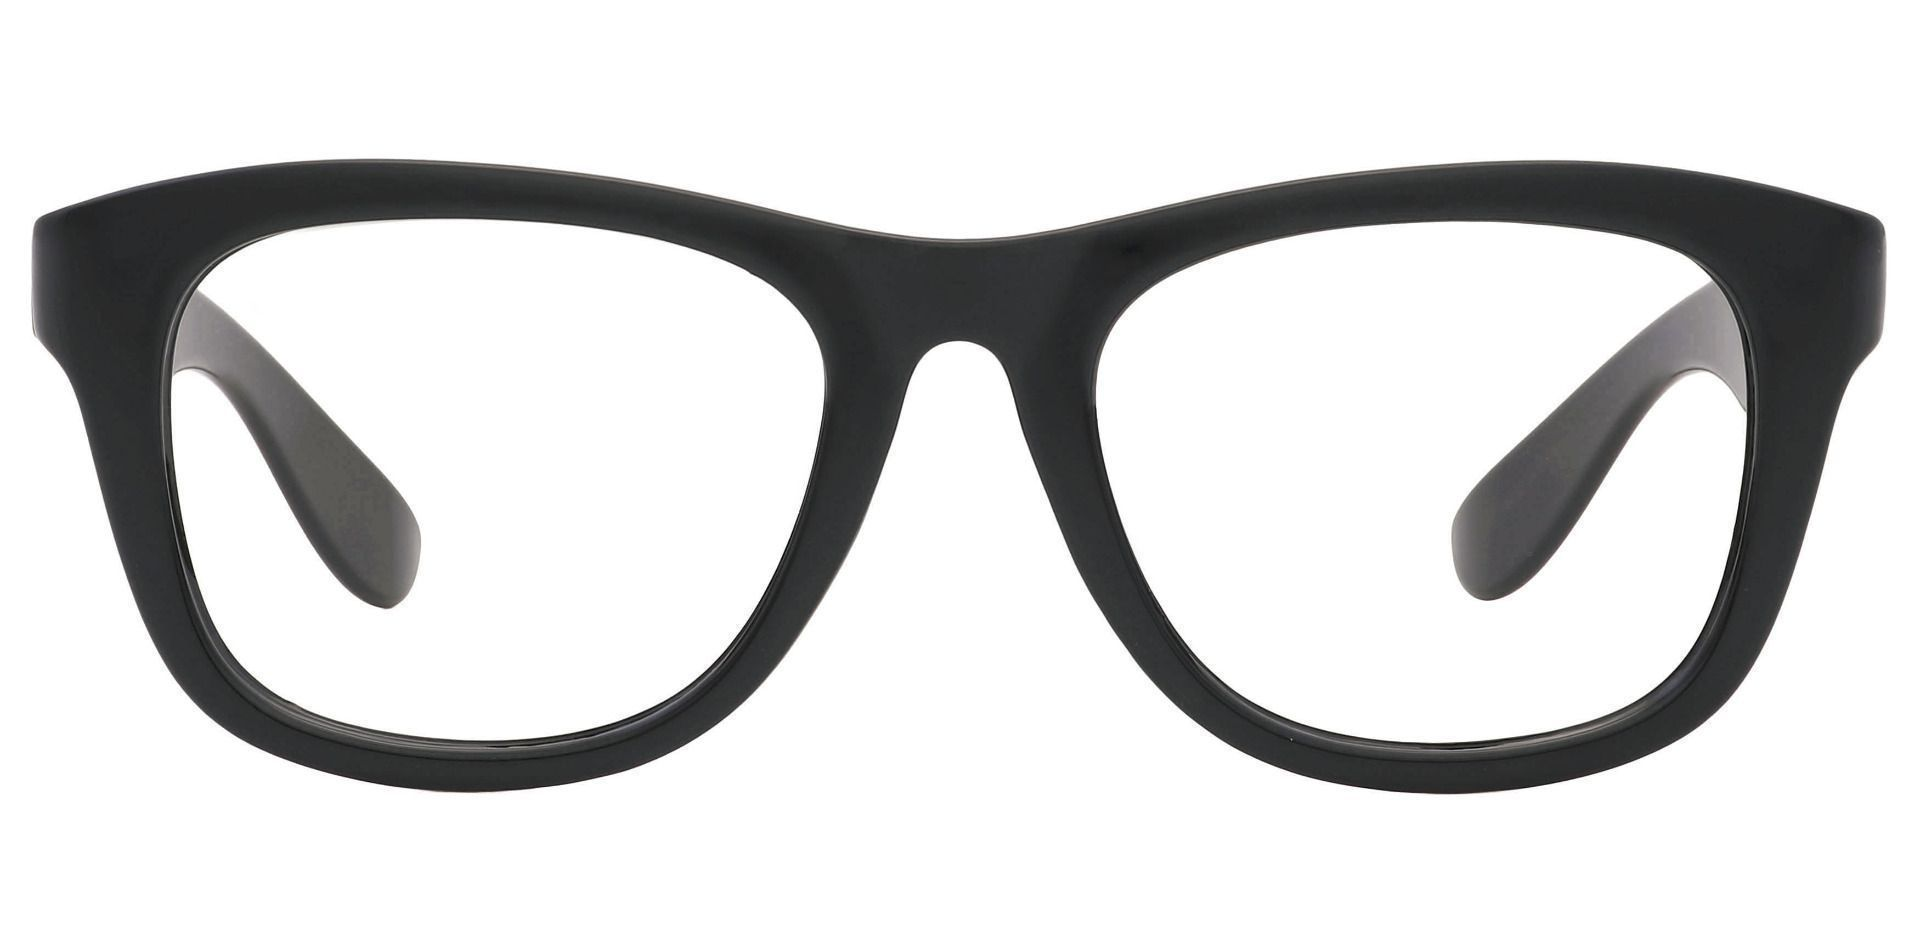 Callie Square Prescription Glasses - Black